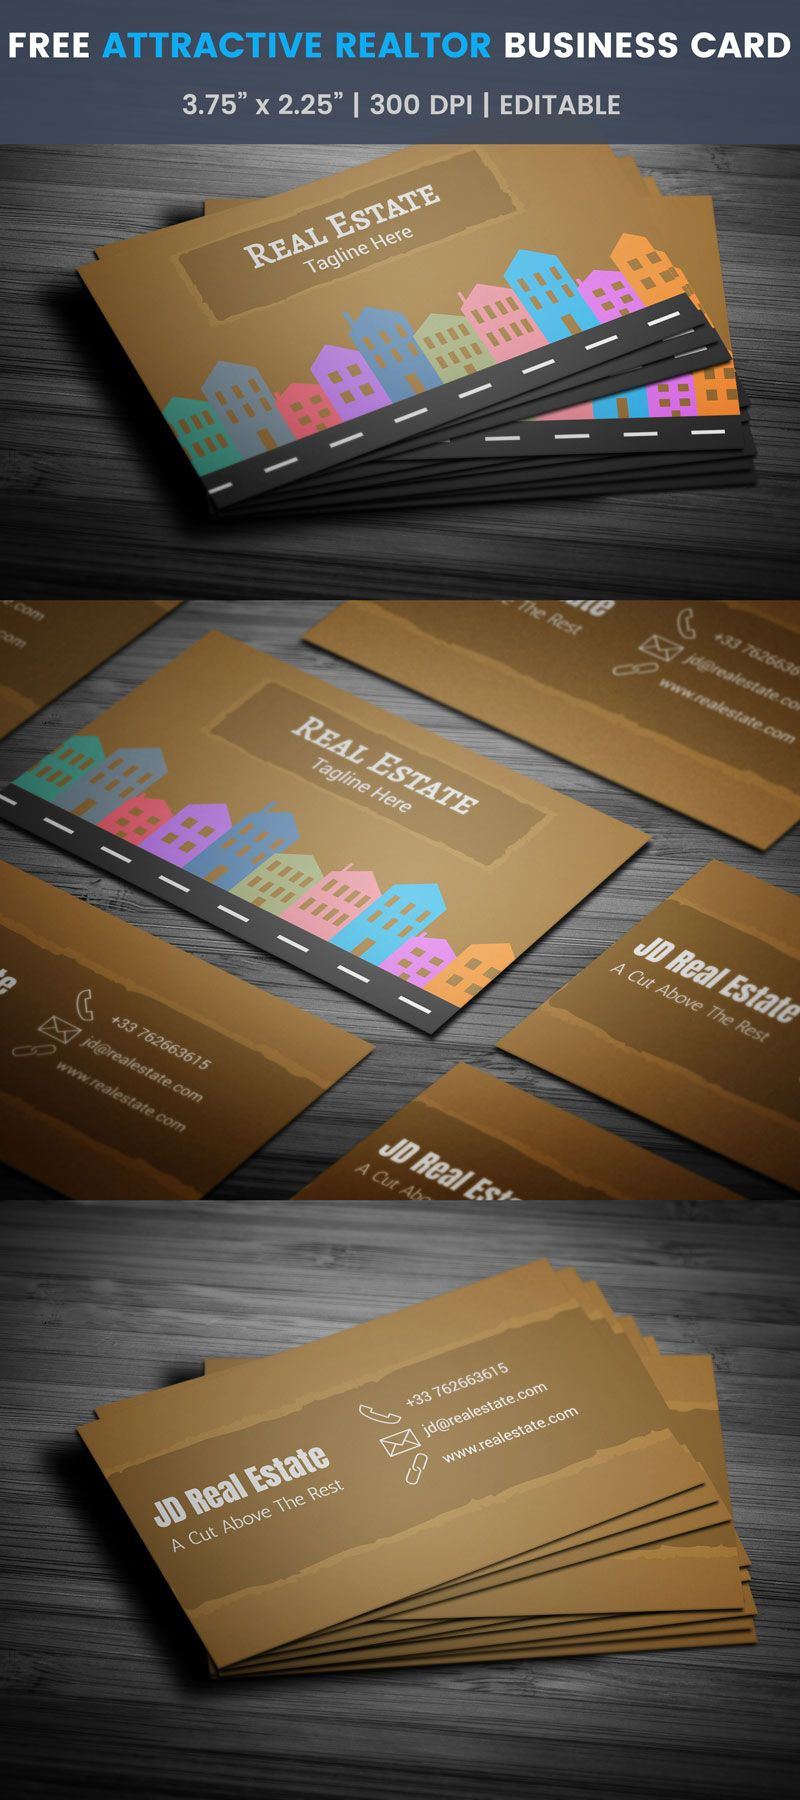 Free Commercial Real Estate Business Card | Real estate business ...